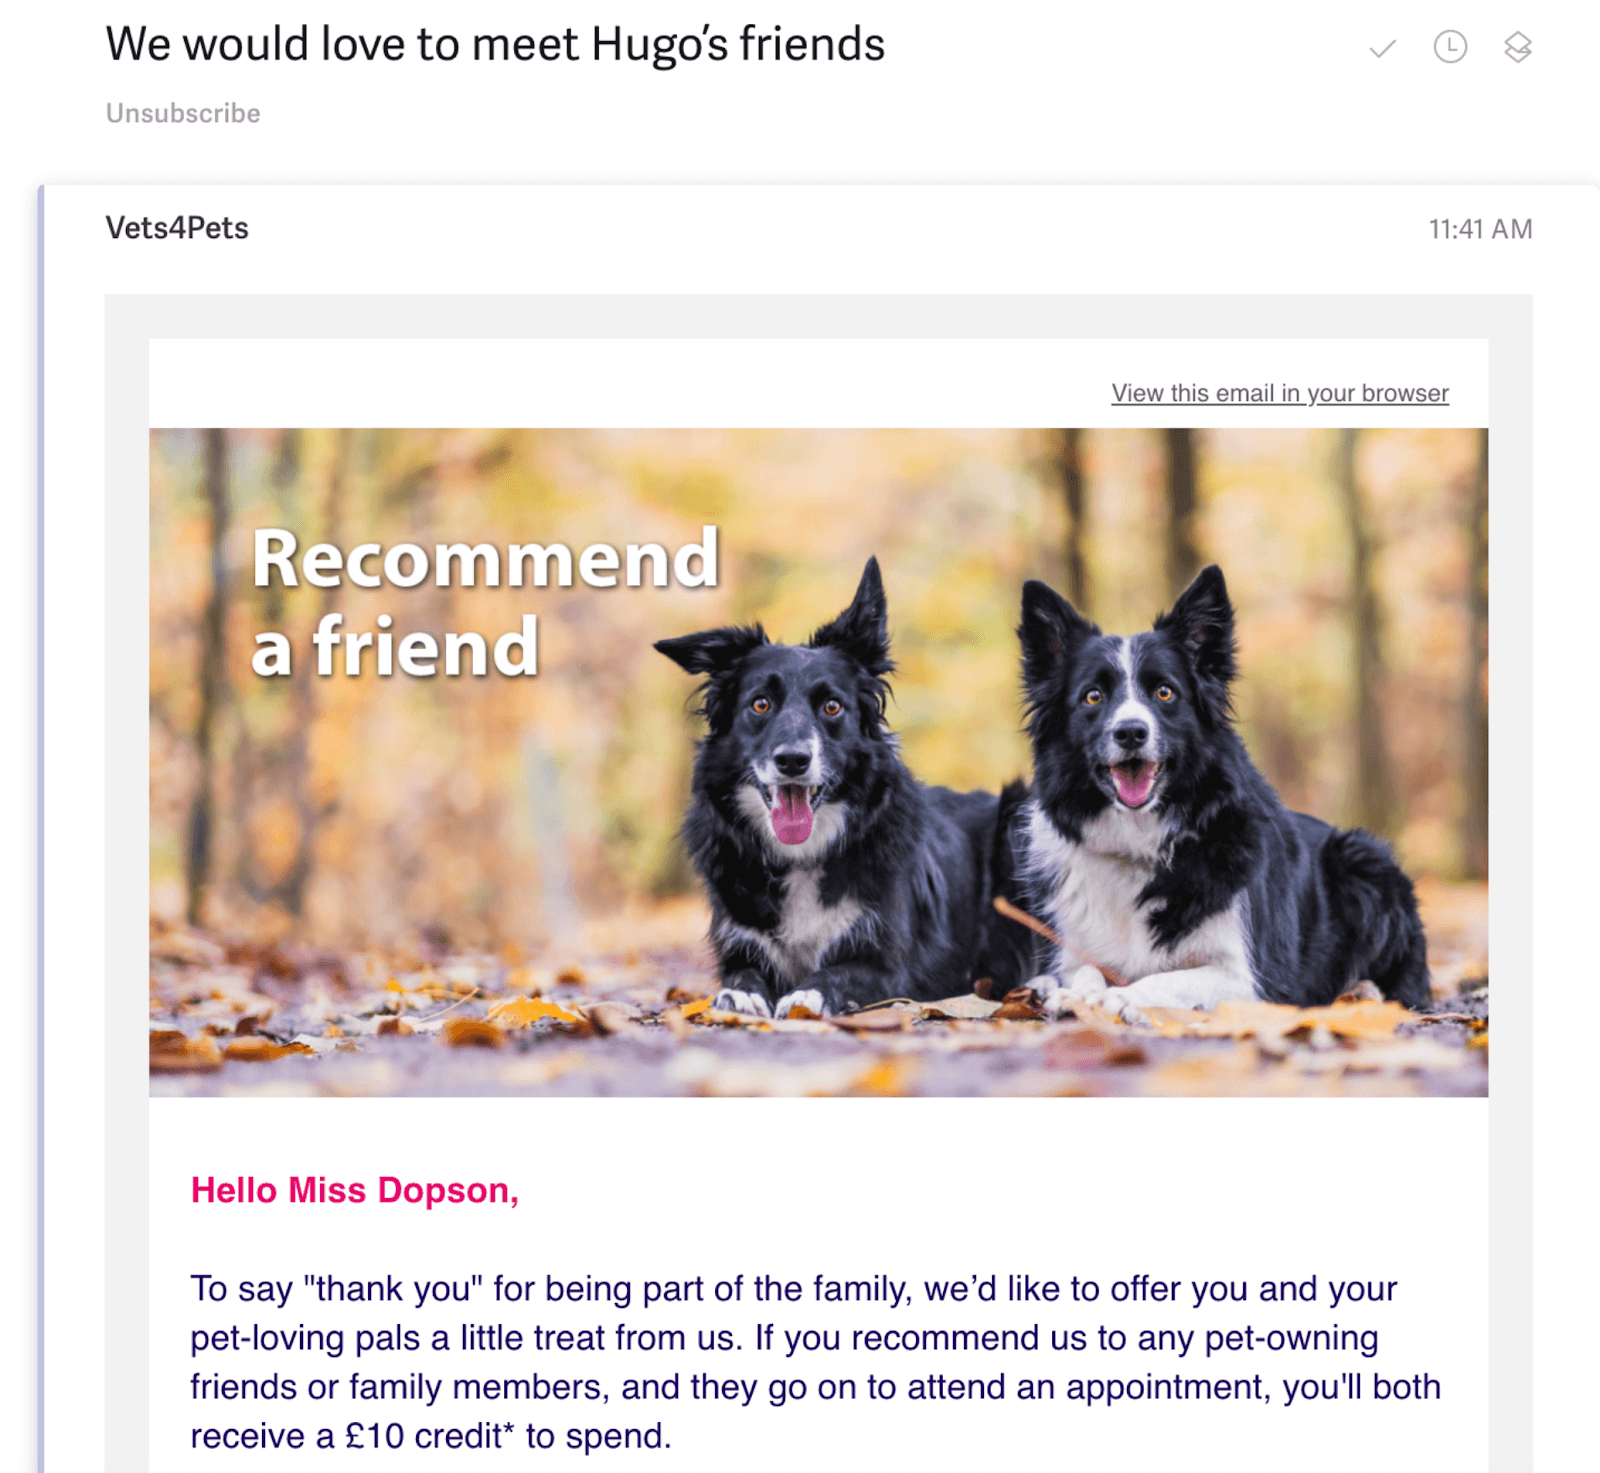 Vets4Pets email campaign